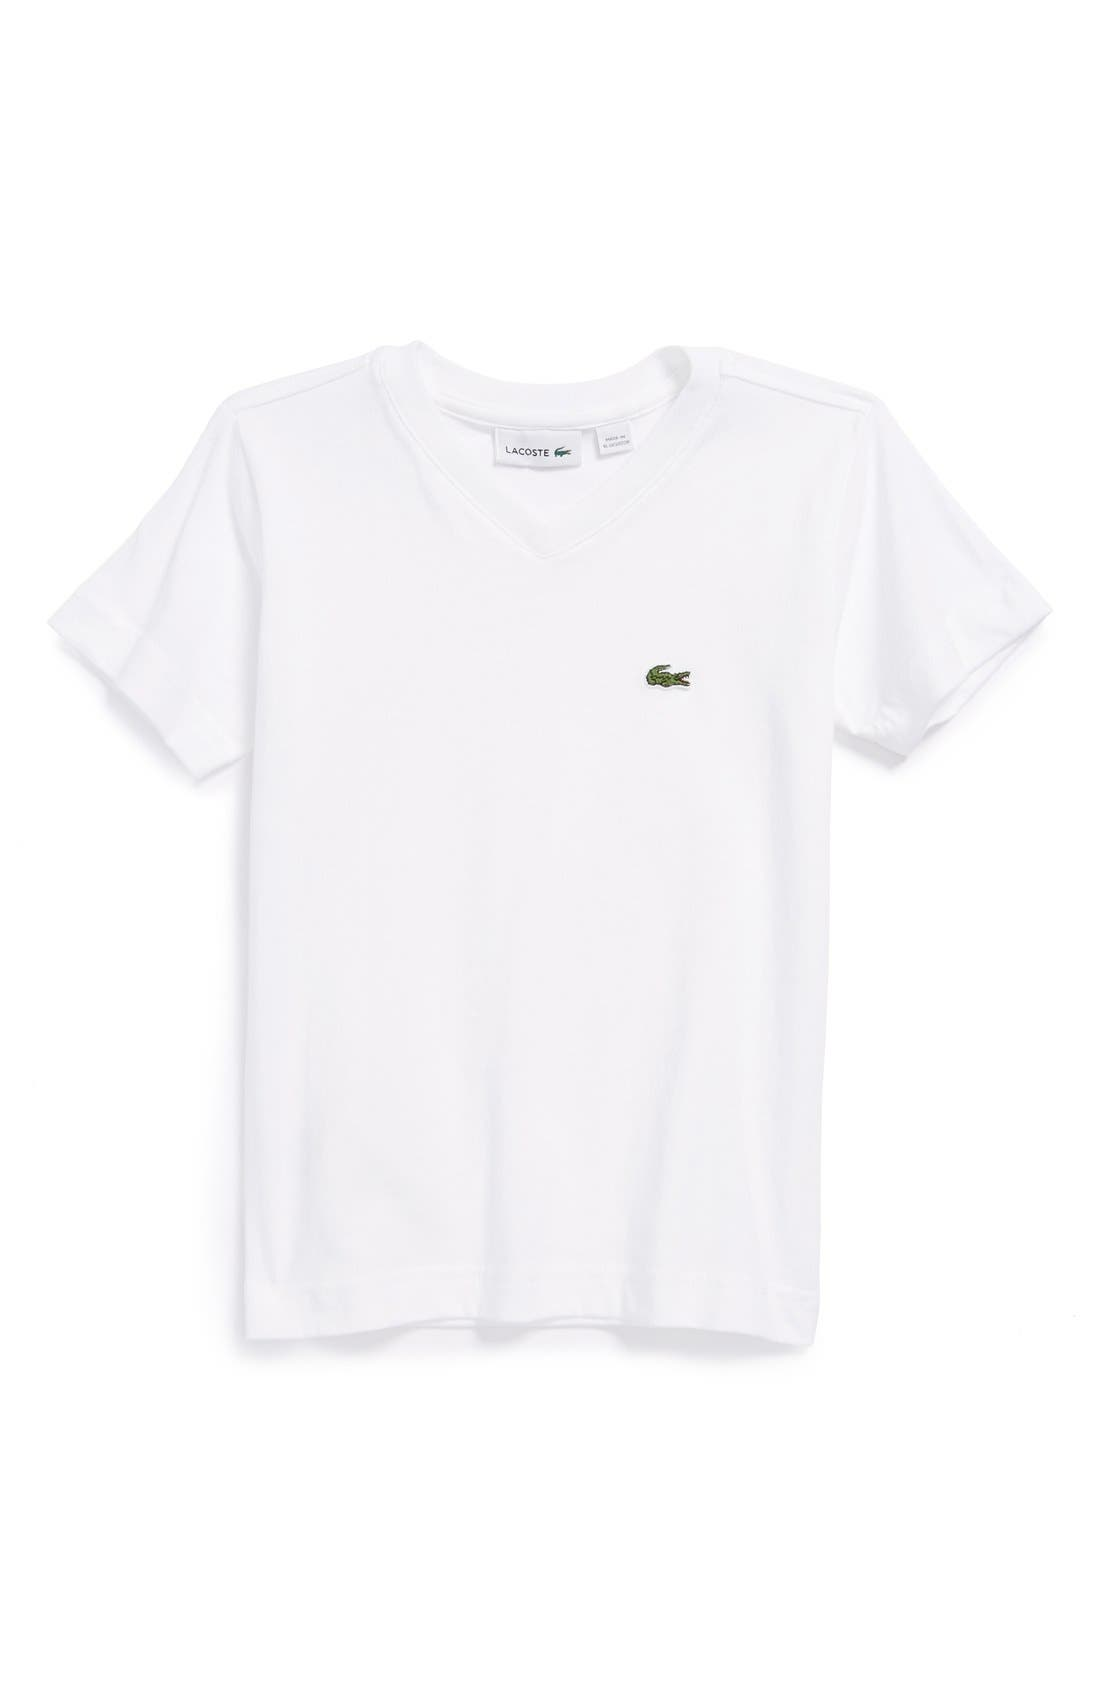 Alternate Image 1 Selected - Lacoste Classic Jersey V-Neck T-Shirt (Toddler Boys)